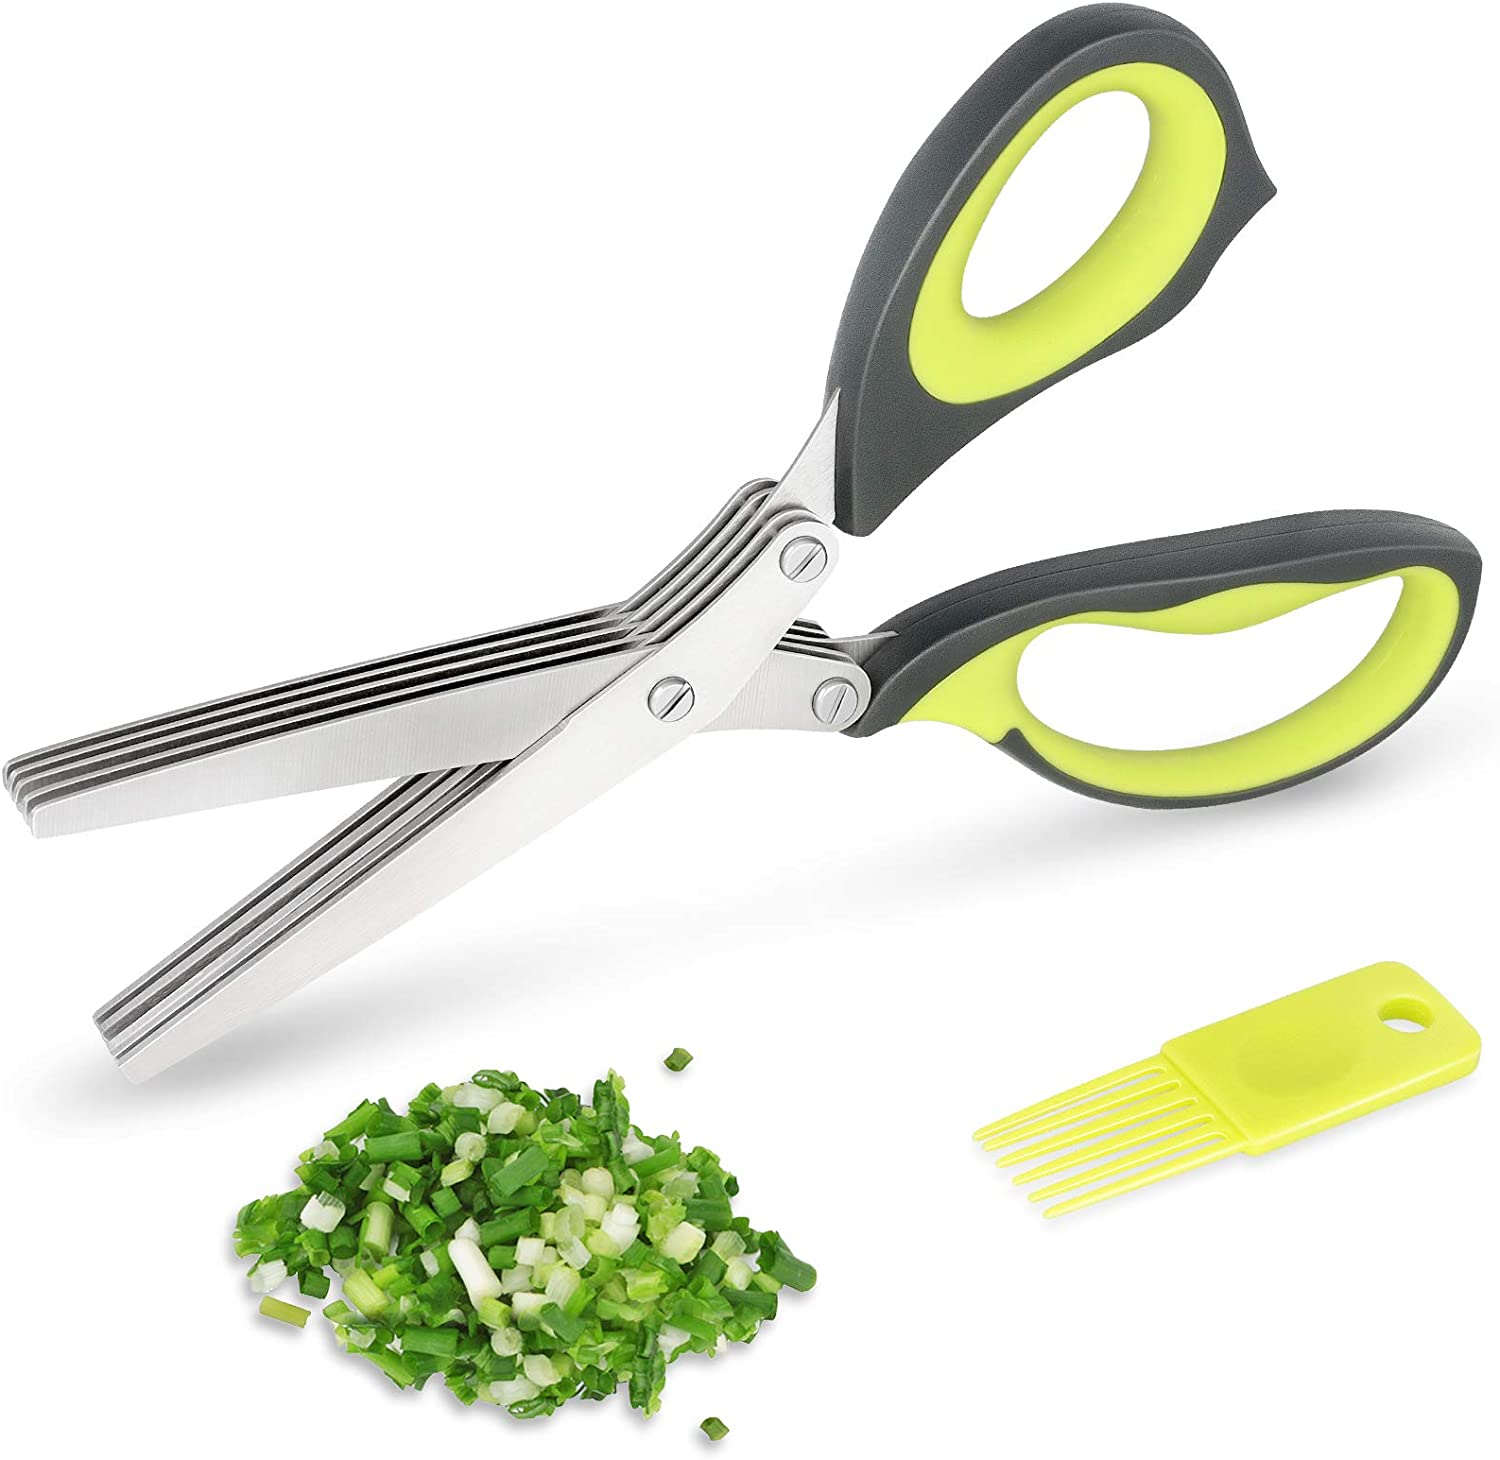 Asdirne Herb Scissors, 5-Layers Food-Grade Stainless Steel Blades, Triple-Fixing Stable Structure, Ergonomic Handle, Suitable for Herb Cutting or Making Salad, 9 Inch